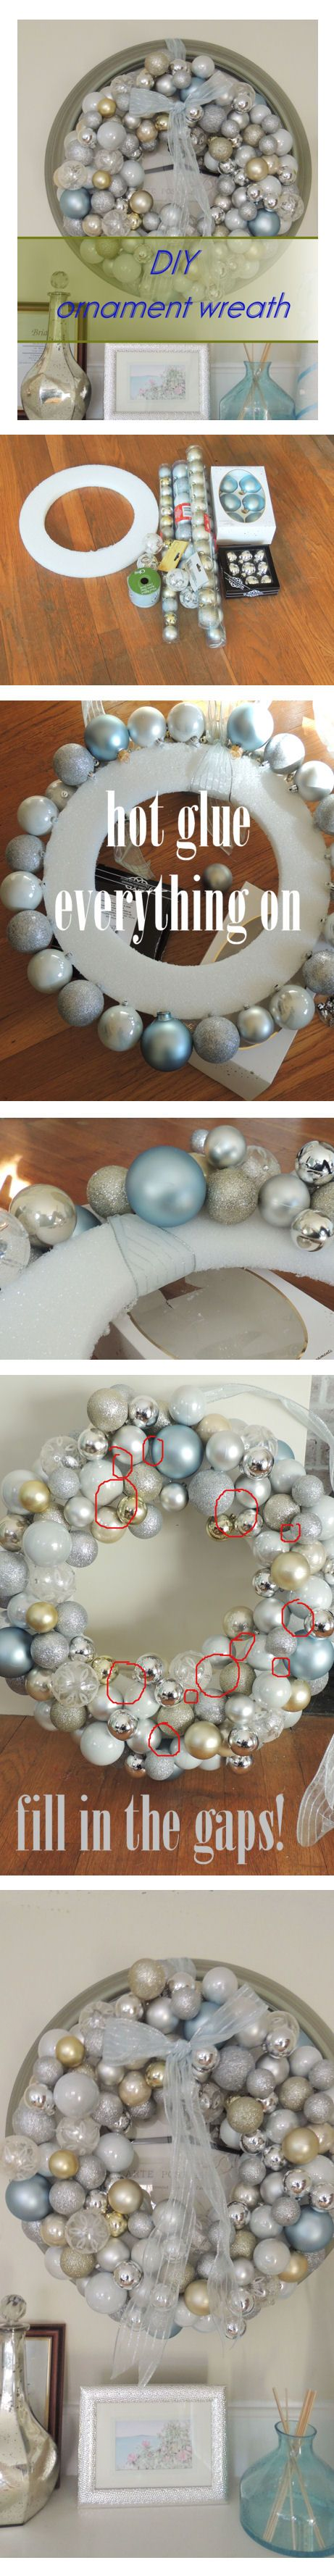 DIY Christmas ornament wreath - perfect for all the random Christmas balls I have accumulated over the years that somehow don't make the cut onto the tree!